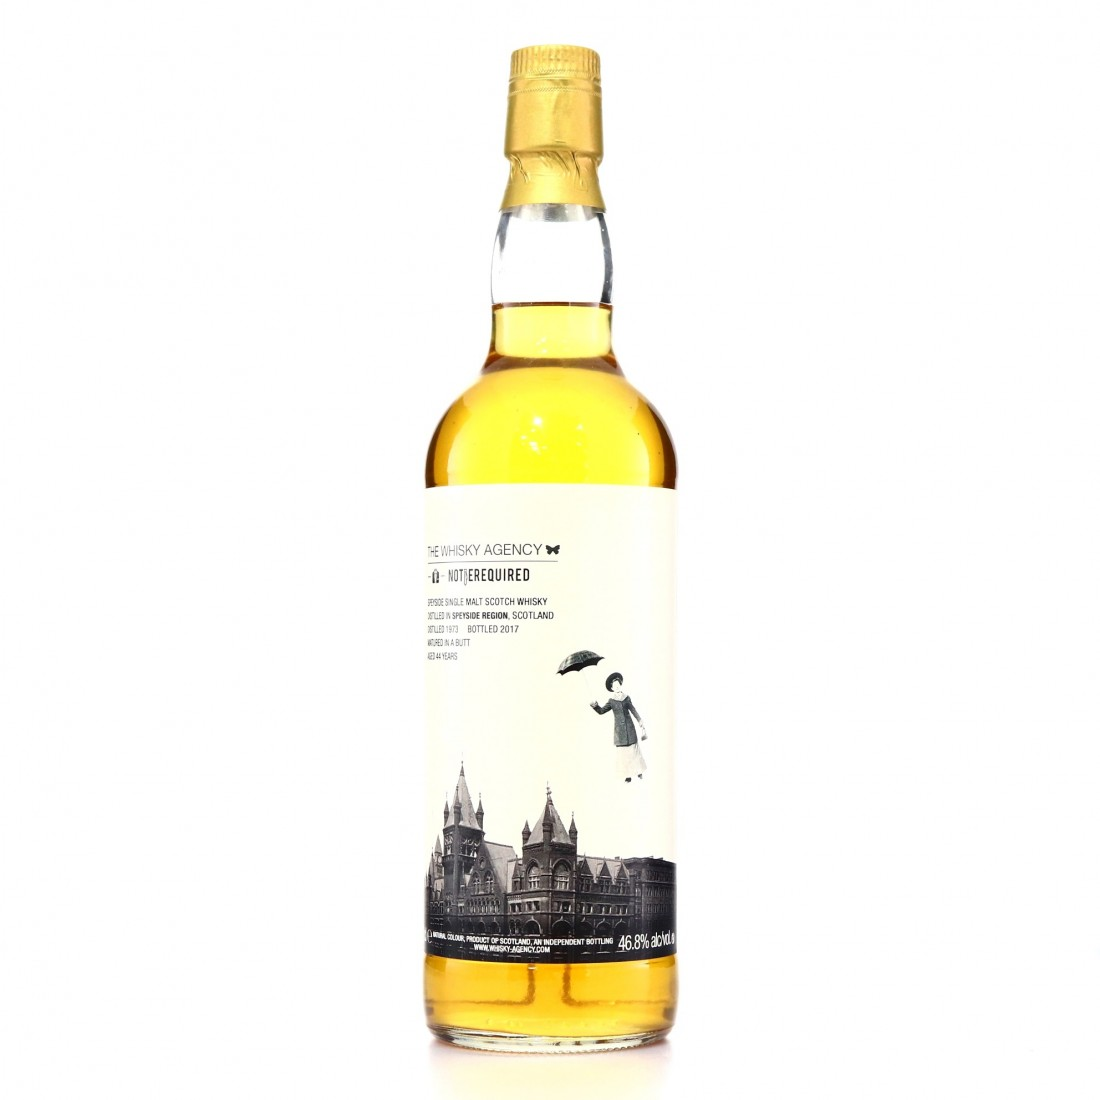 Speyside Single Malt 1973 Whisky Agency 44 Year Old